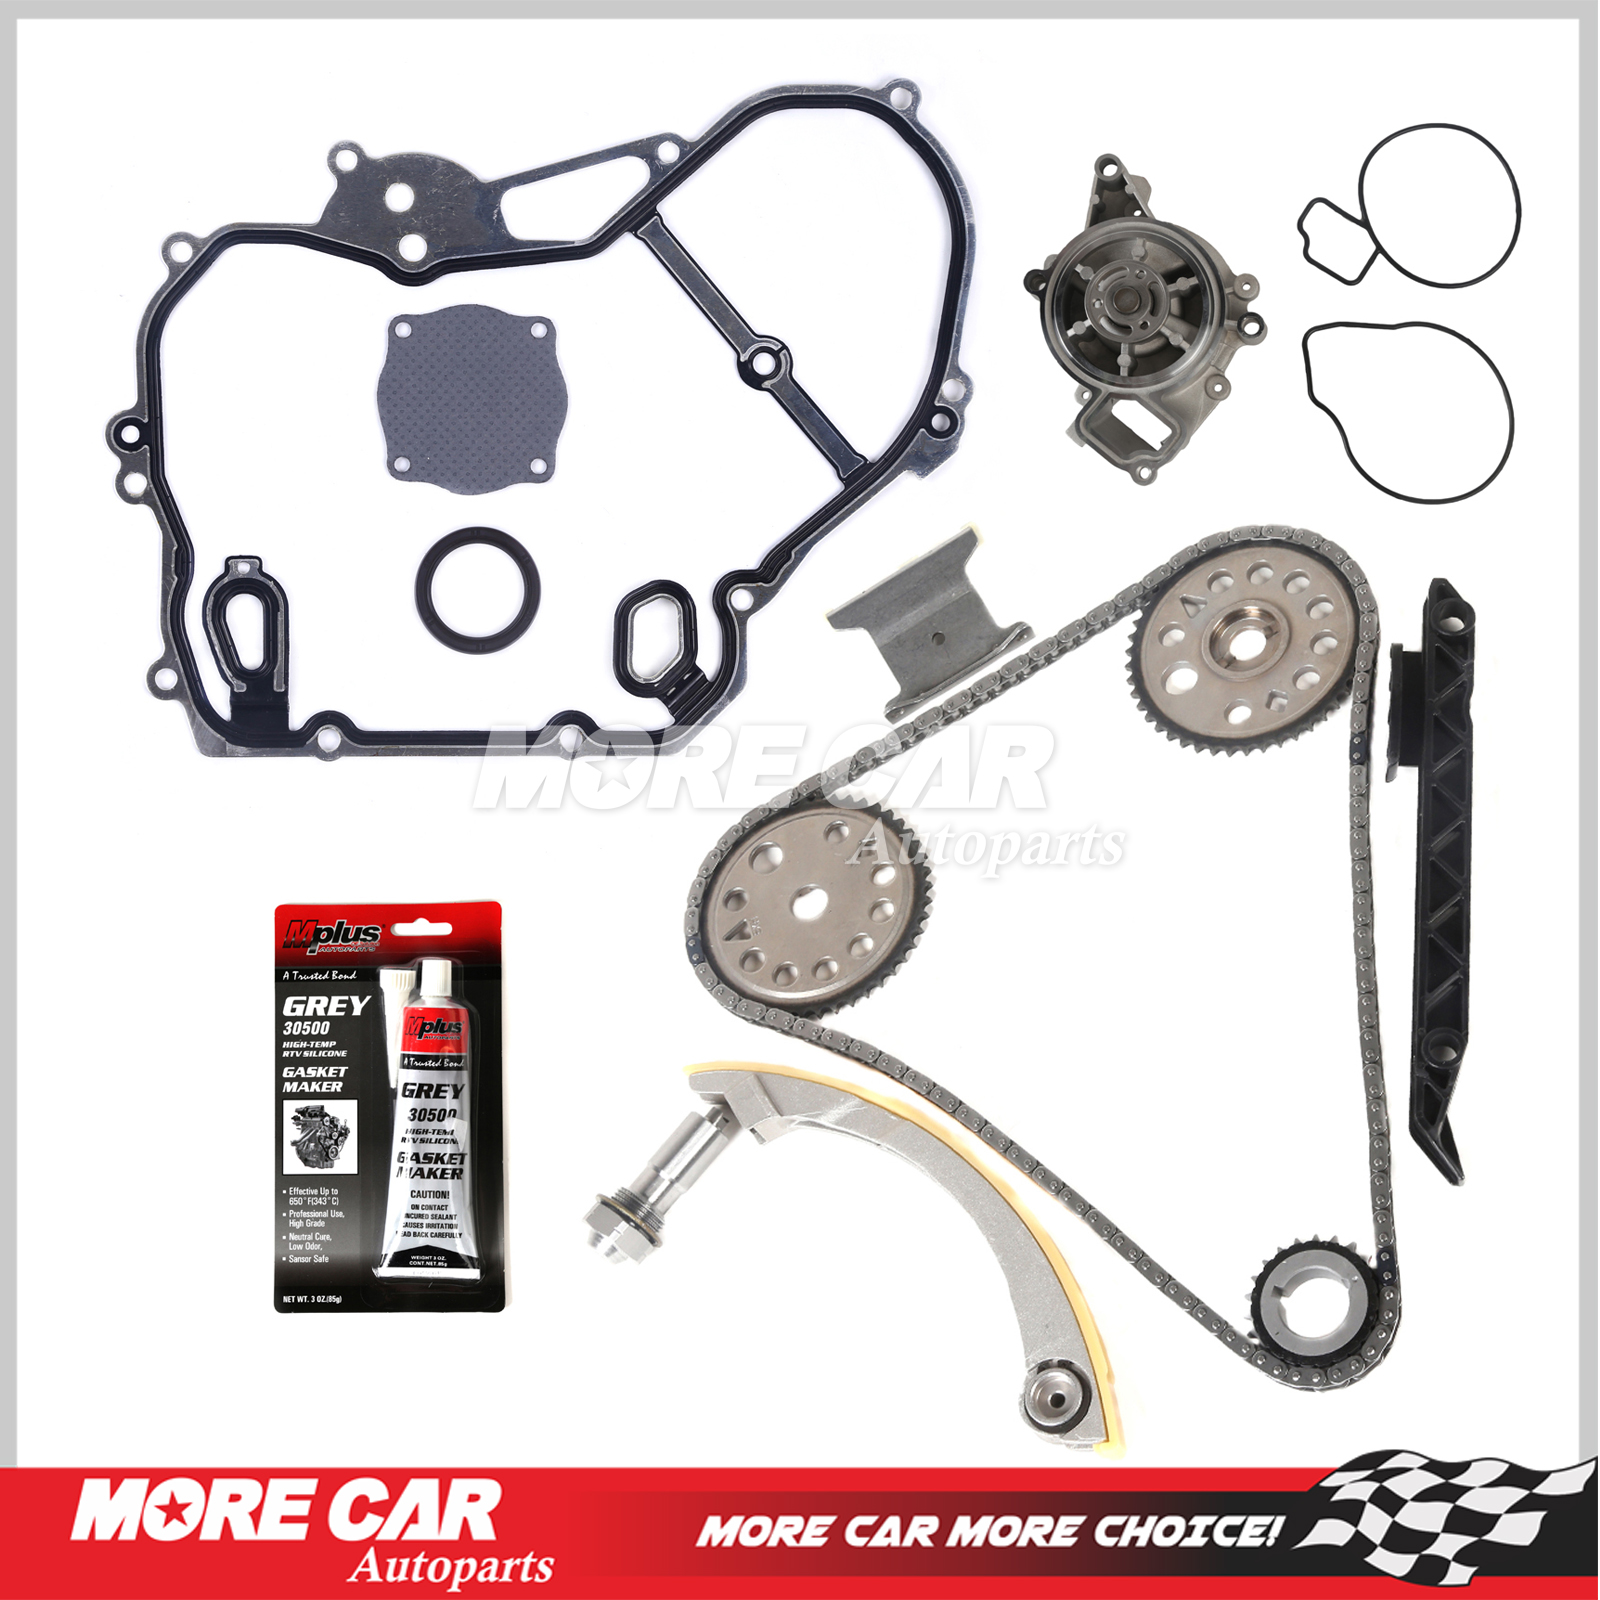 Ref 9 4201s 00 08 Chevy Saturn 20 22 Dohc Ecotec Timing Chain Water Pump Kit